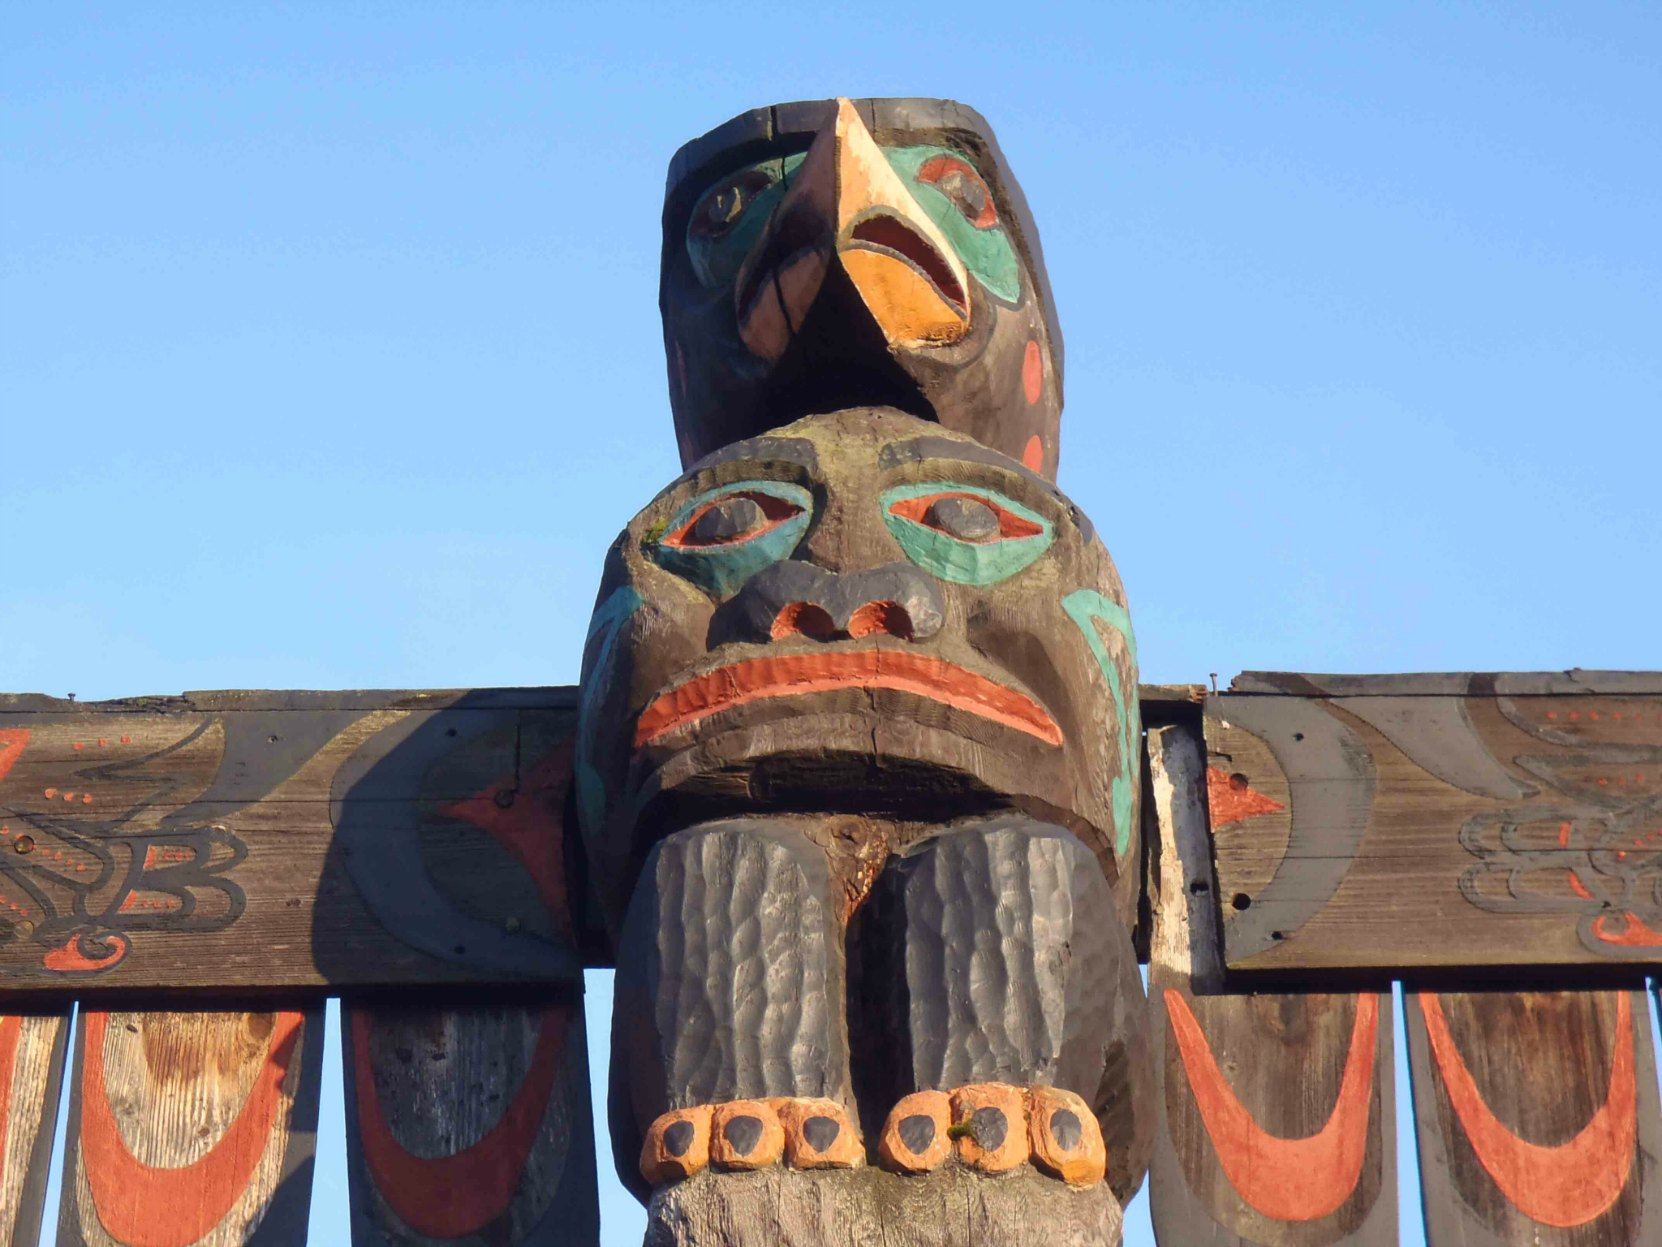 Pole of Wealth, Thunderbird and Spirit figures. Canada Avenue at Kenneth Street